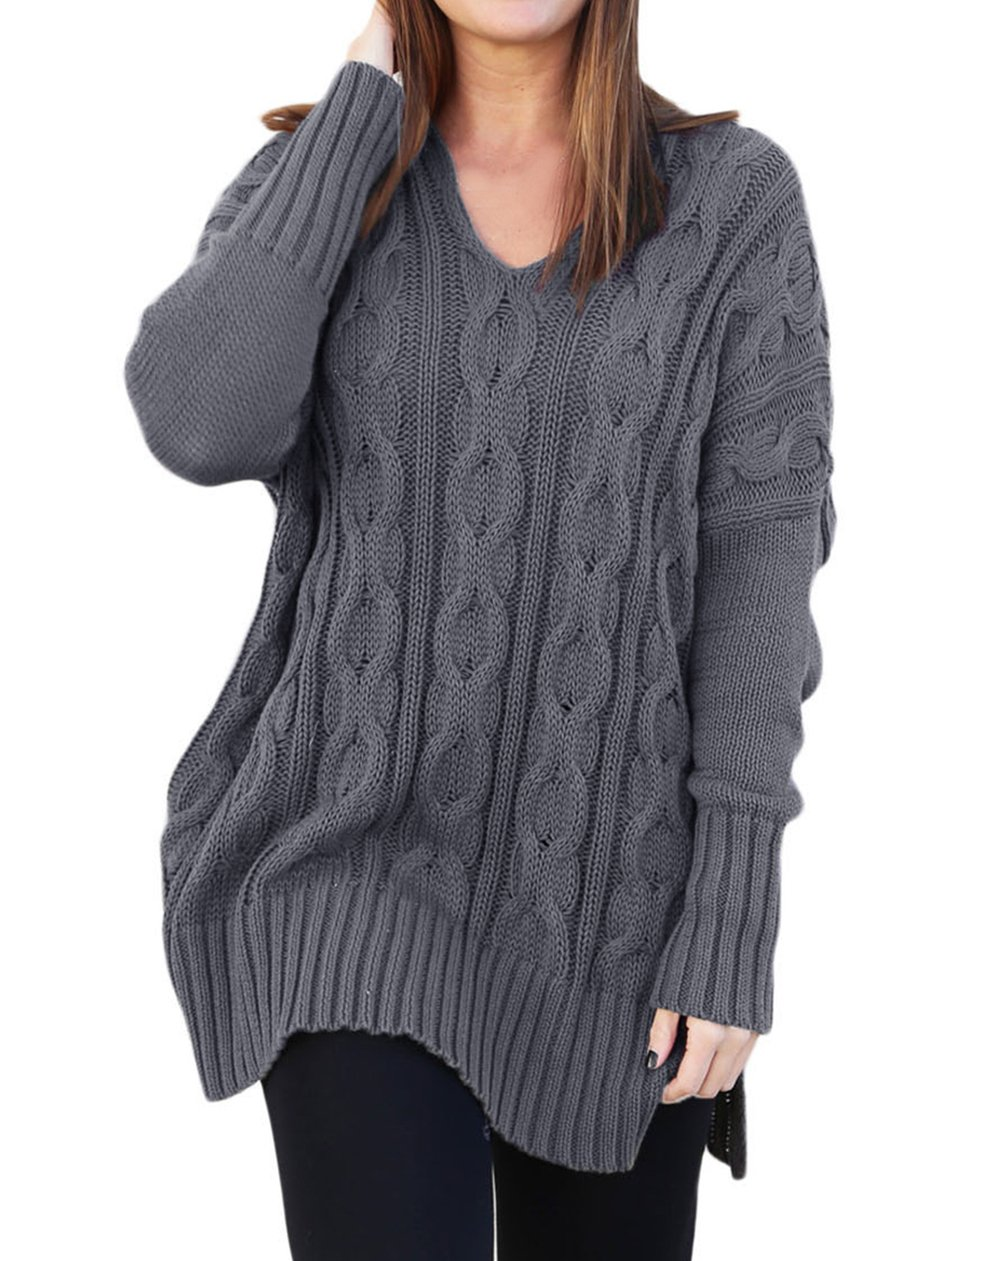 Shawhuwa Womens V Neck Long Sleeve Loose Knit Sweater Pullover Top L Gray